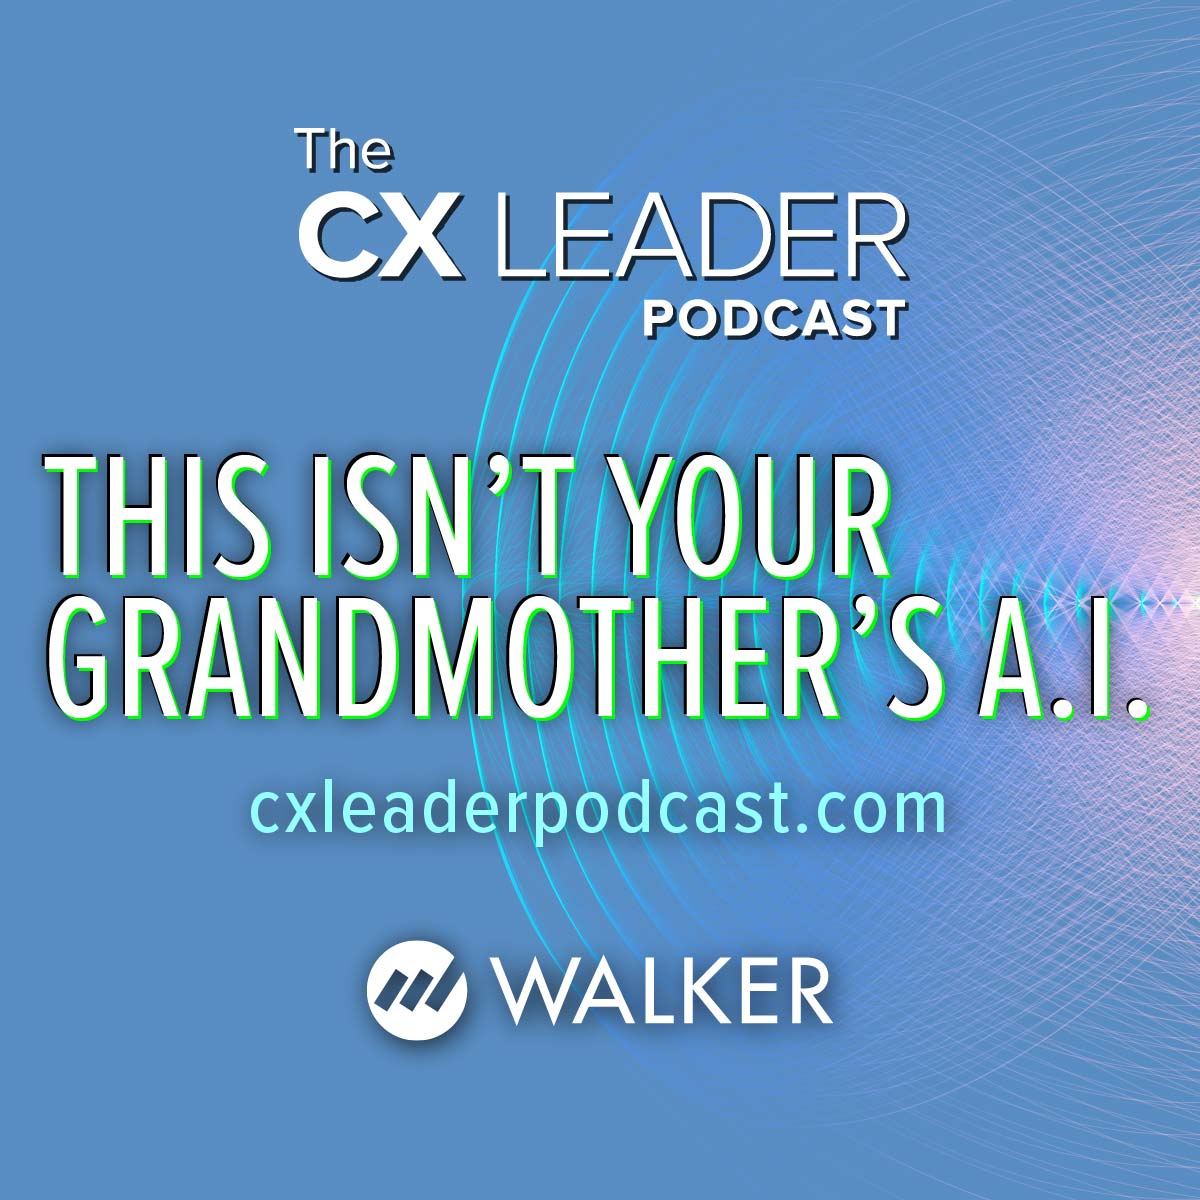 It's not your grandmother's A.I.